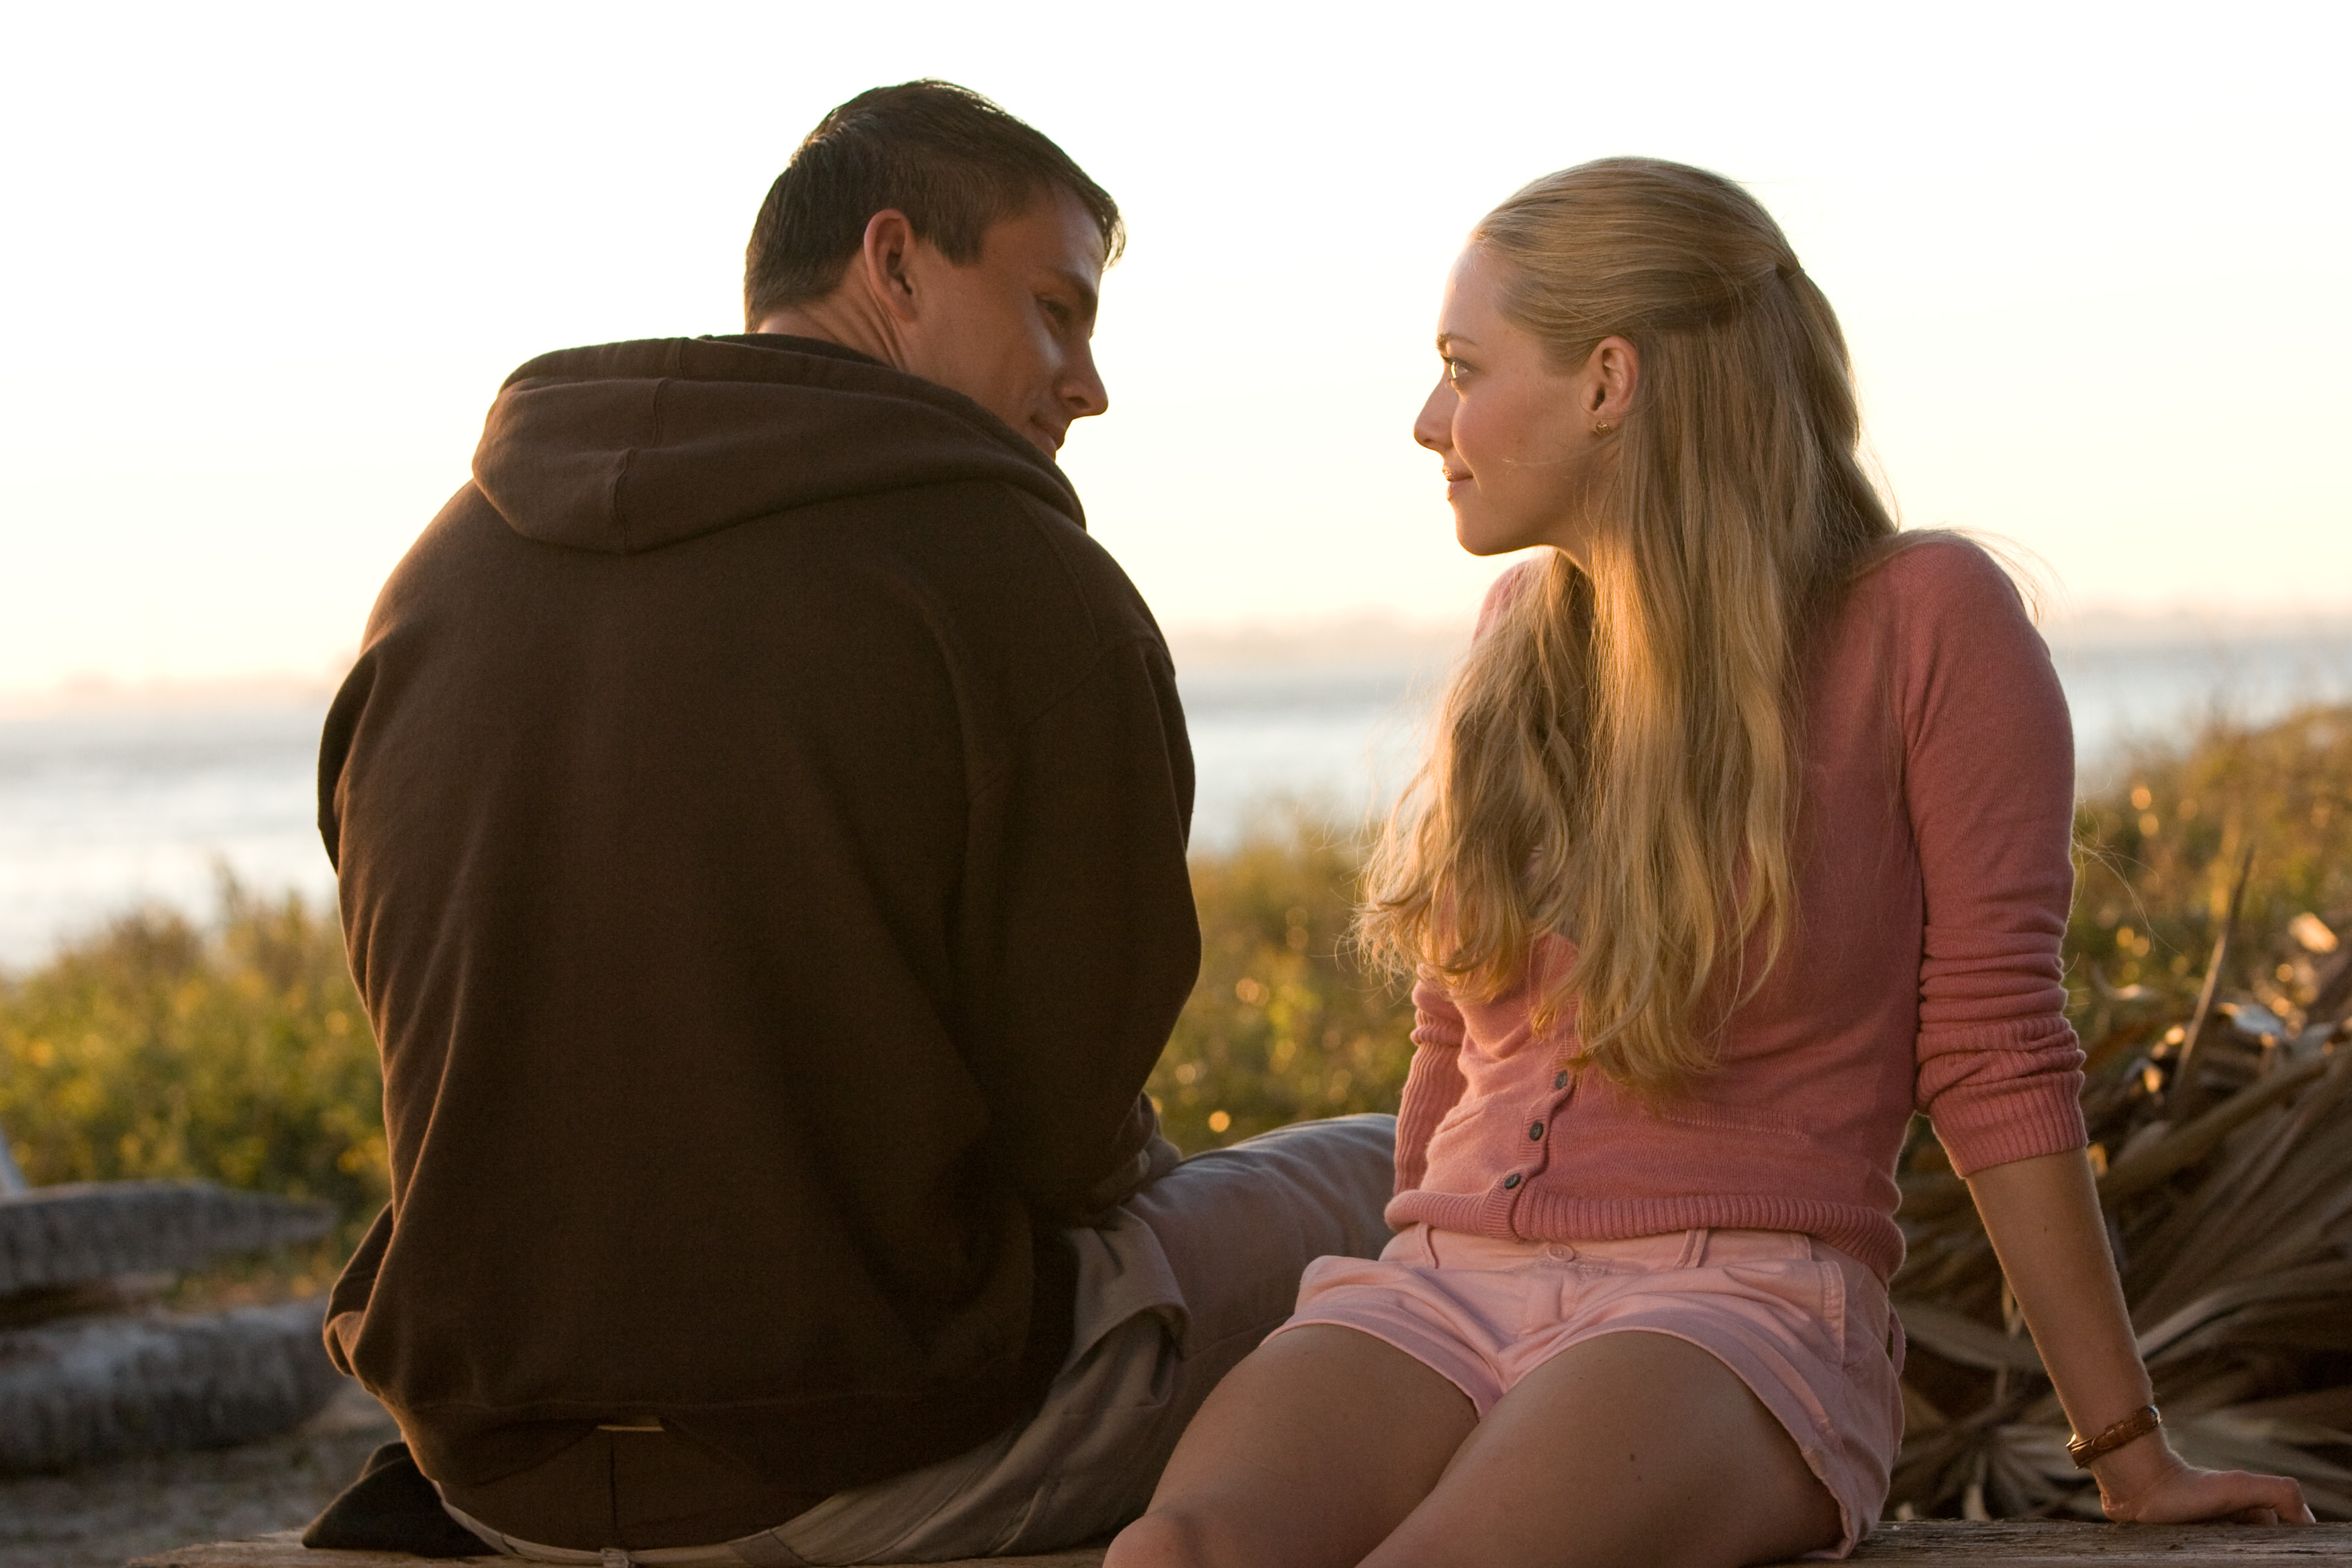 john sony pictures 2010 starring amanda seyfried and channing tatum